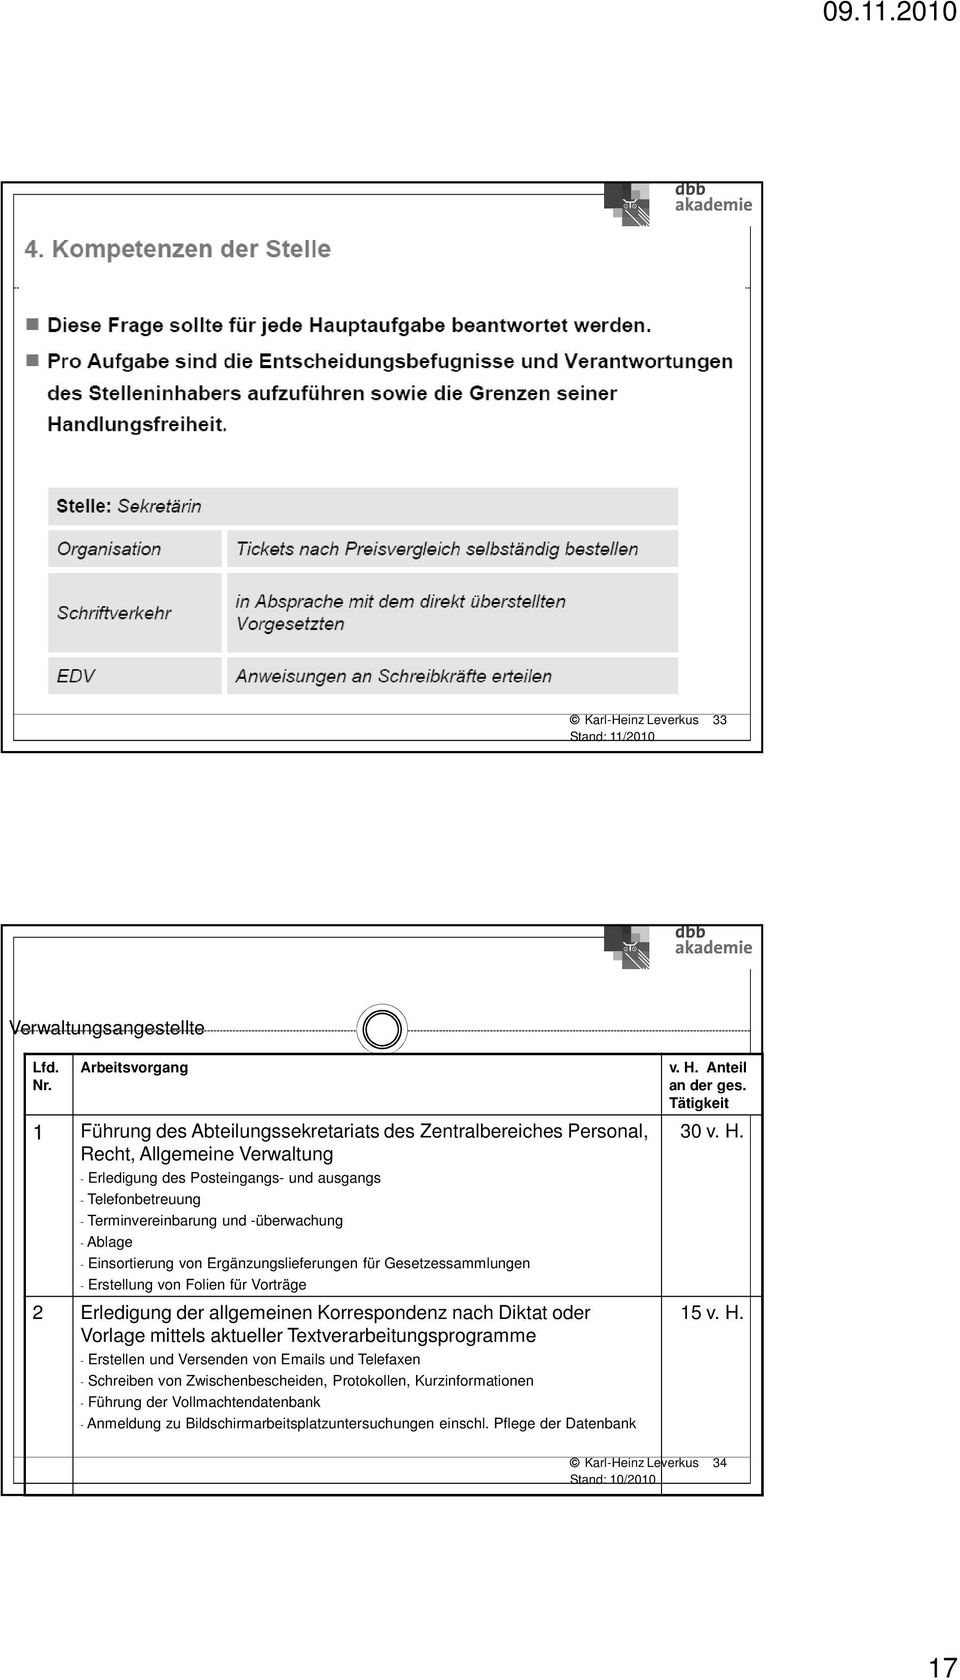 Charmant Haushaltskonten Vorlage Galerie - Entry Level Resume ...